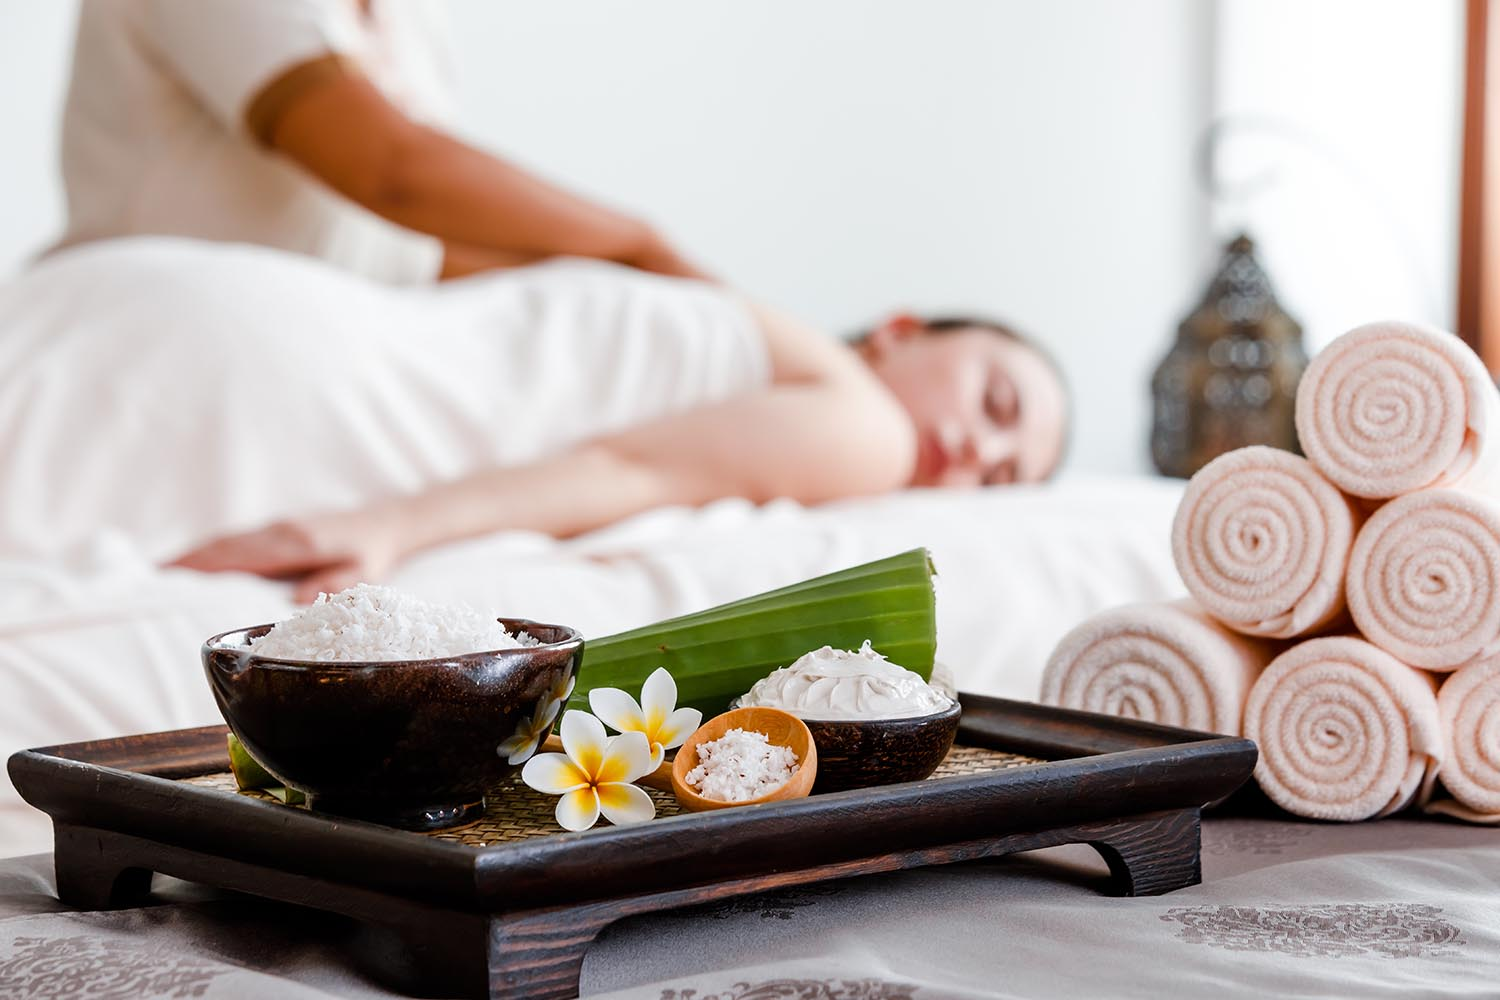 The Coconut Indulgence is one of the spa's most popular treatments.